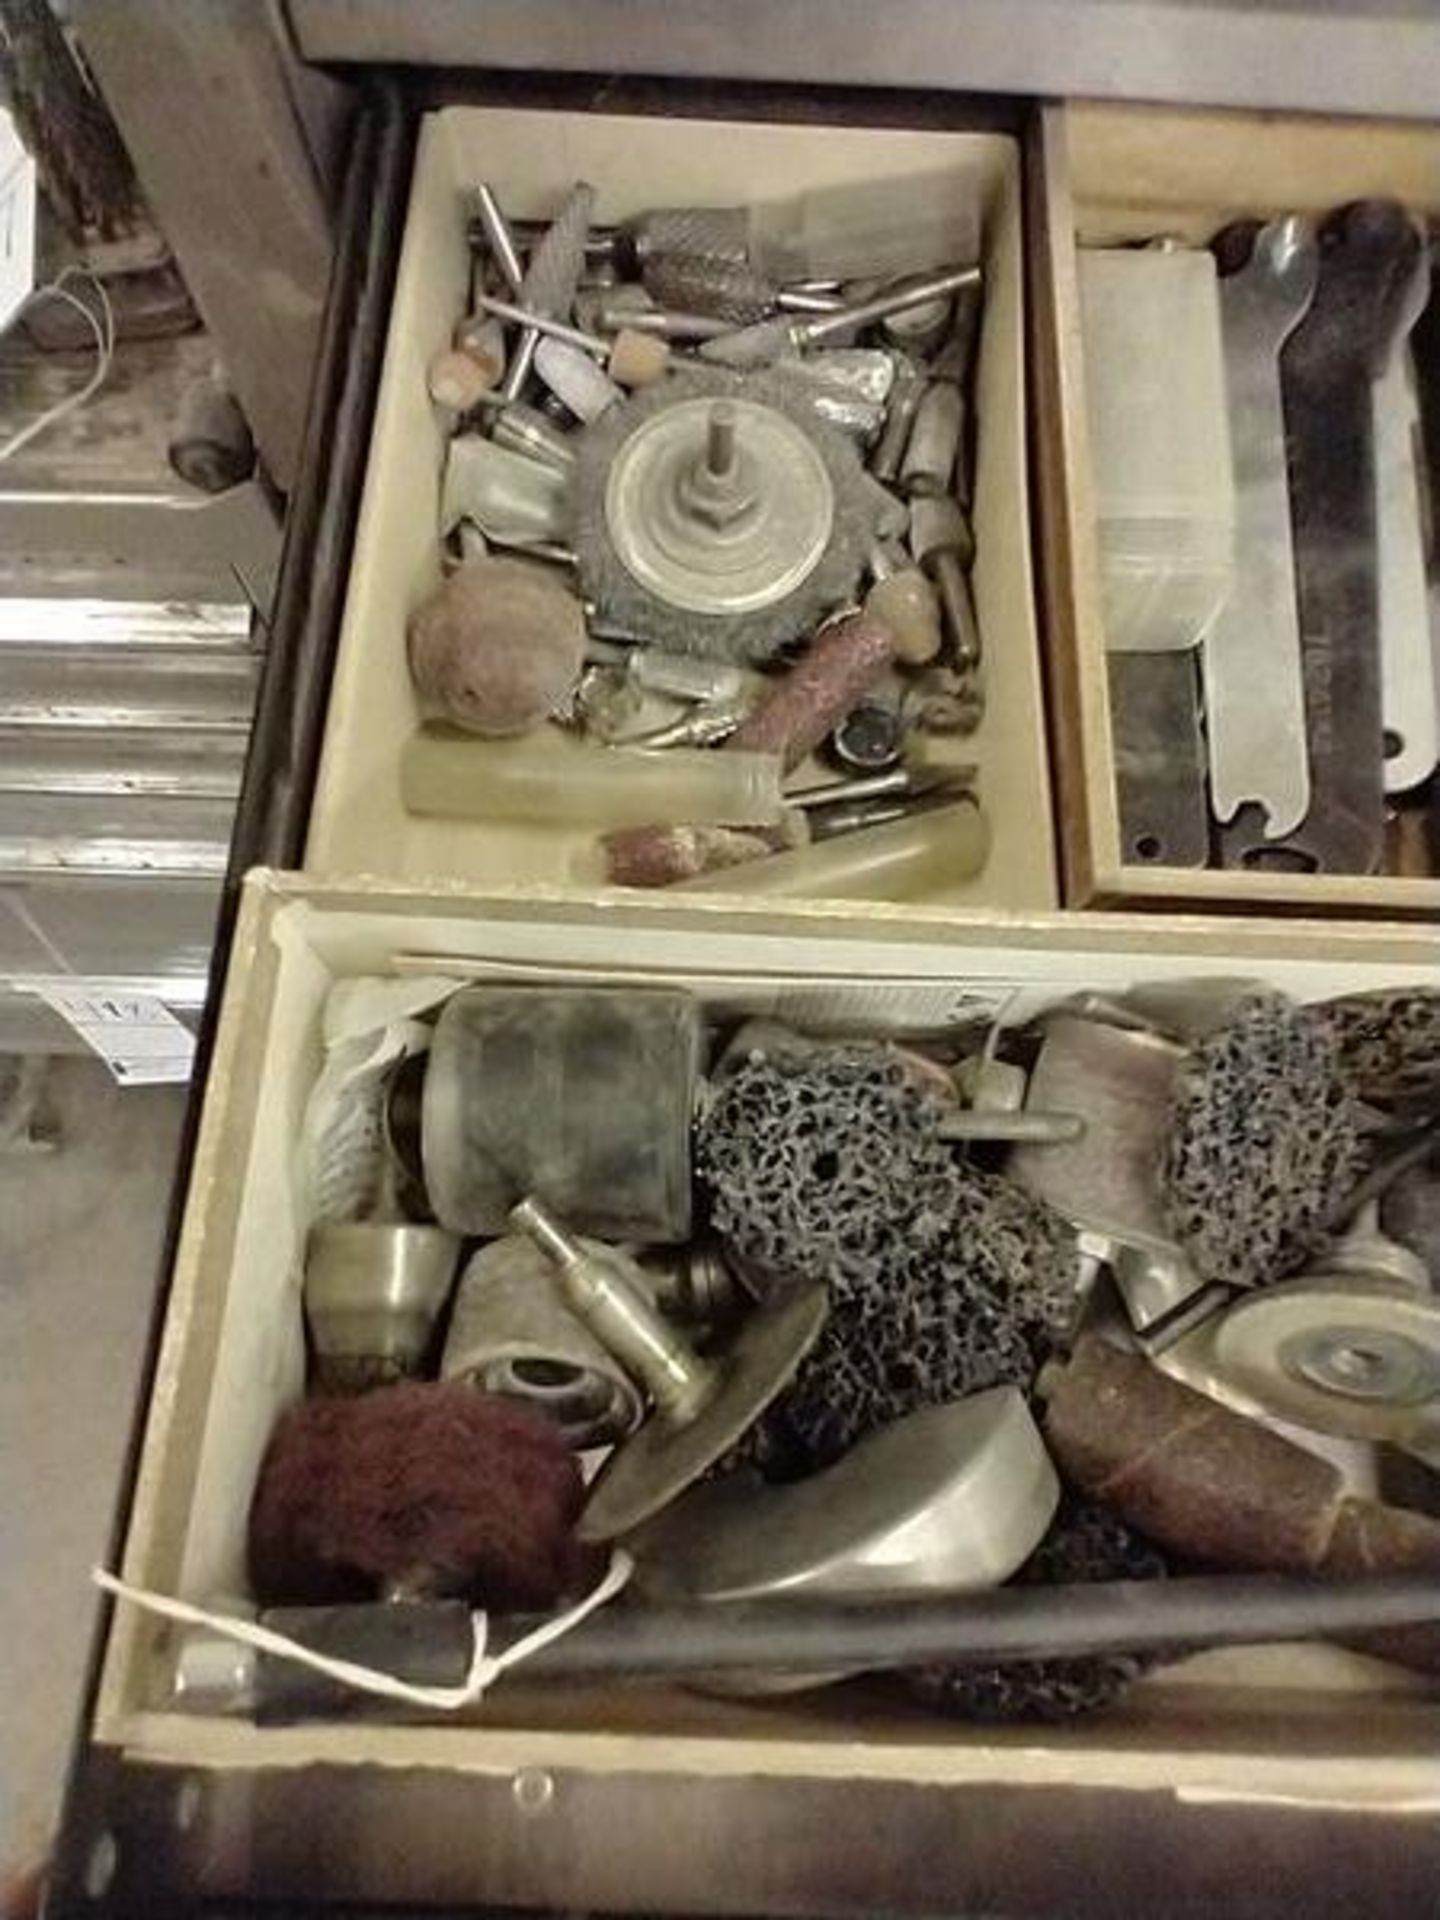 ASSORTED PNEUMATIC TOOLS WITH CONTENTS OF DRAWER - Image 2 of 7